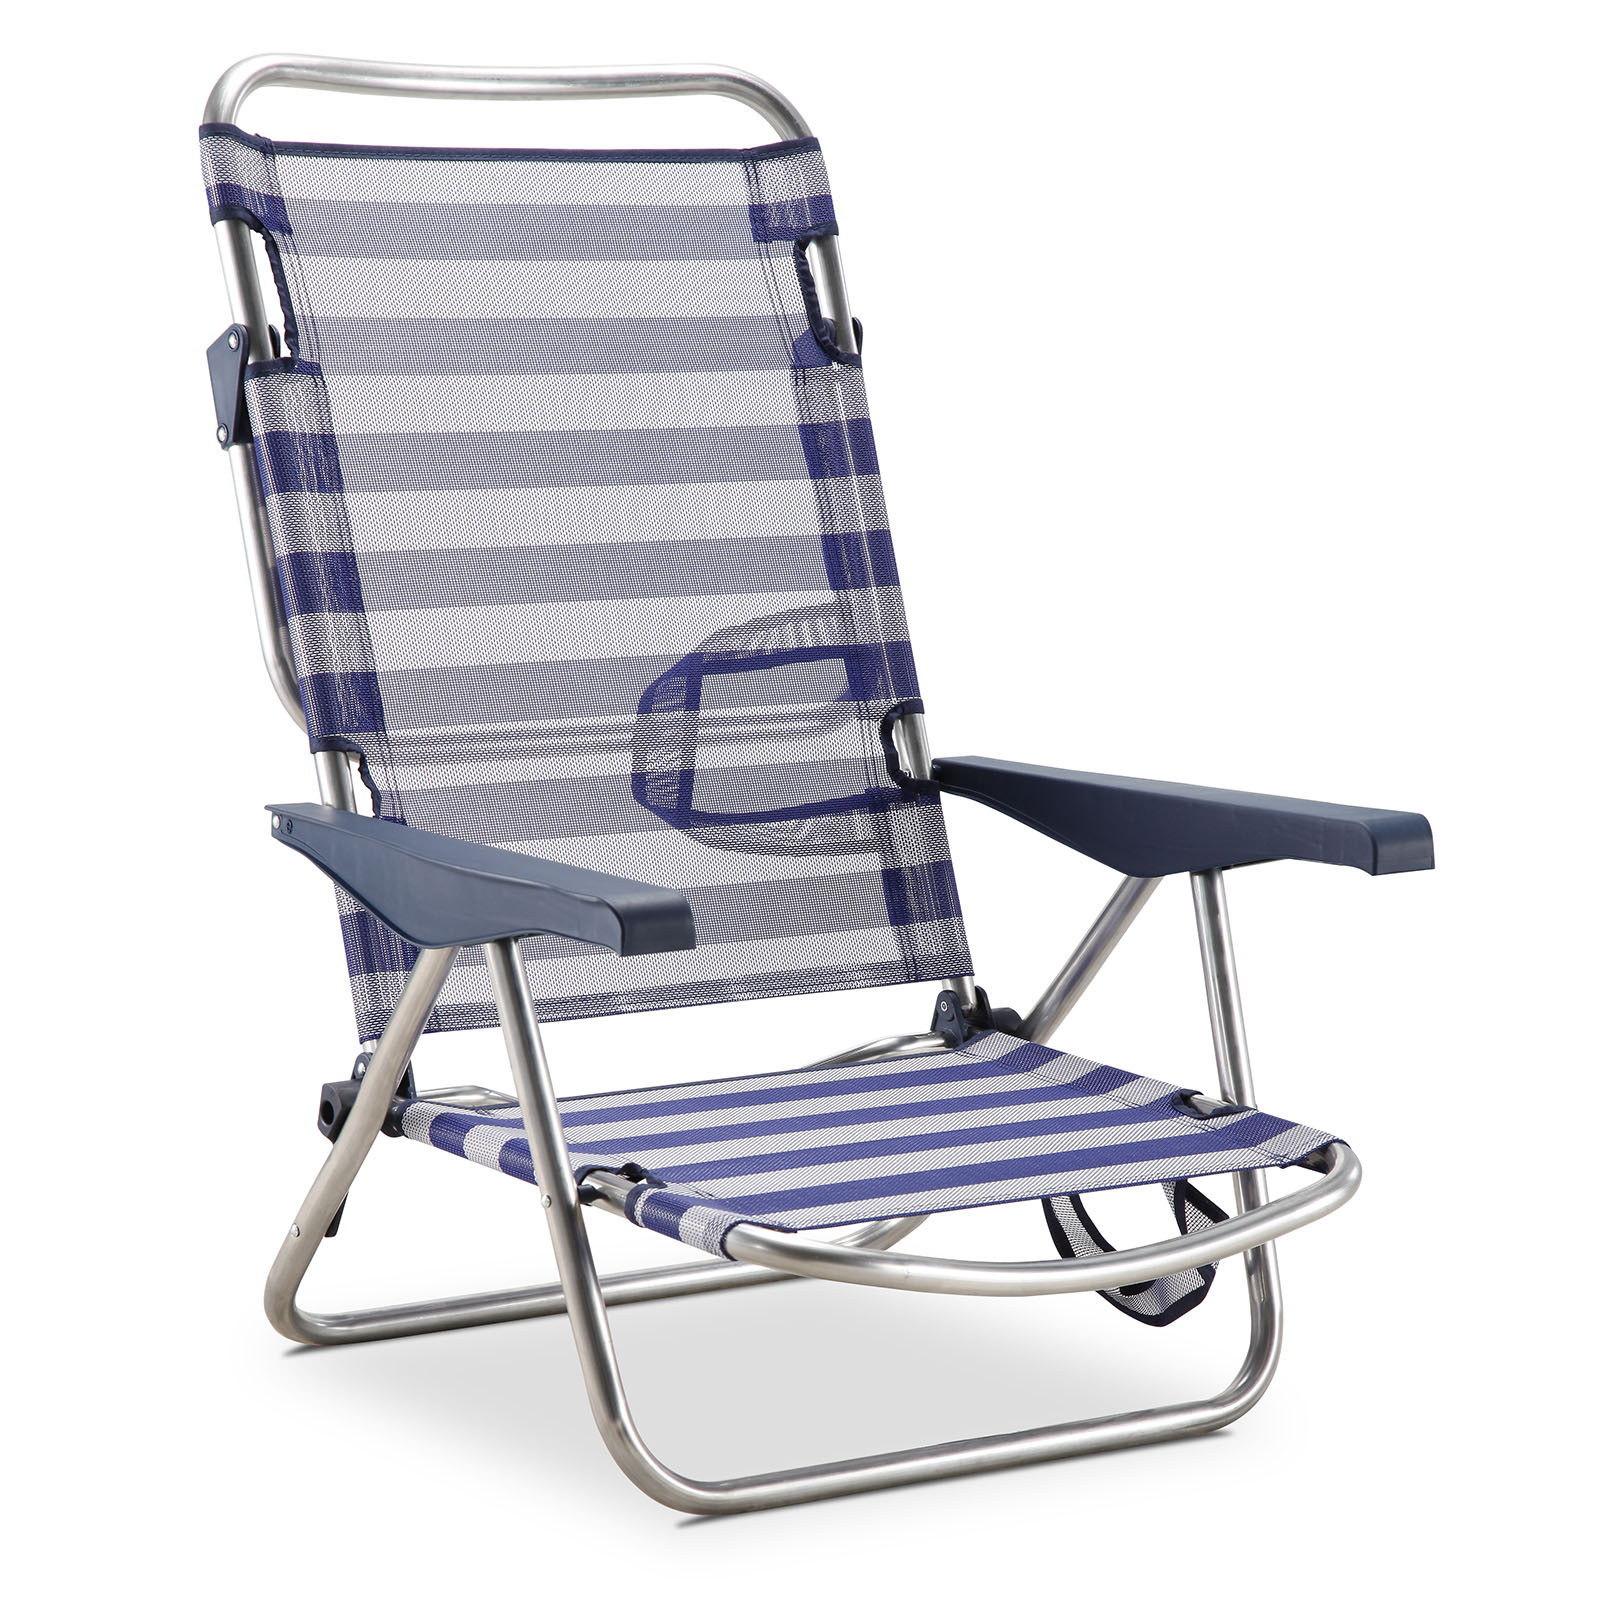 Solenny Beach Chair Bed 4 Position Blue AND White With Handles AND With Folding Leg On Backing- 50001072725168-